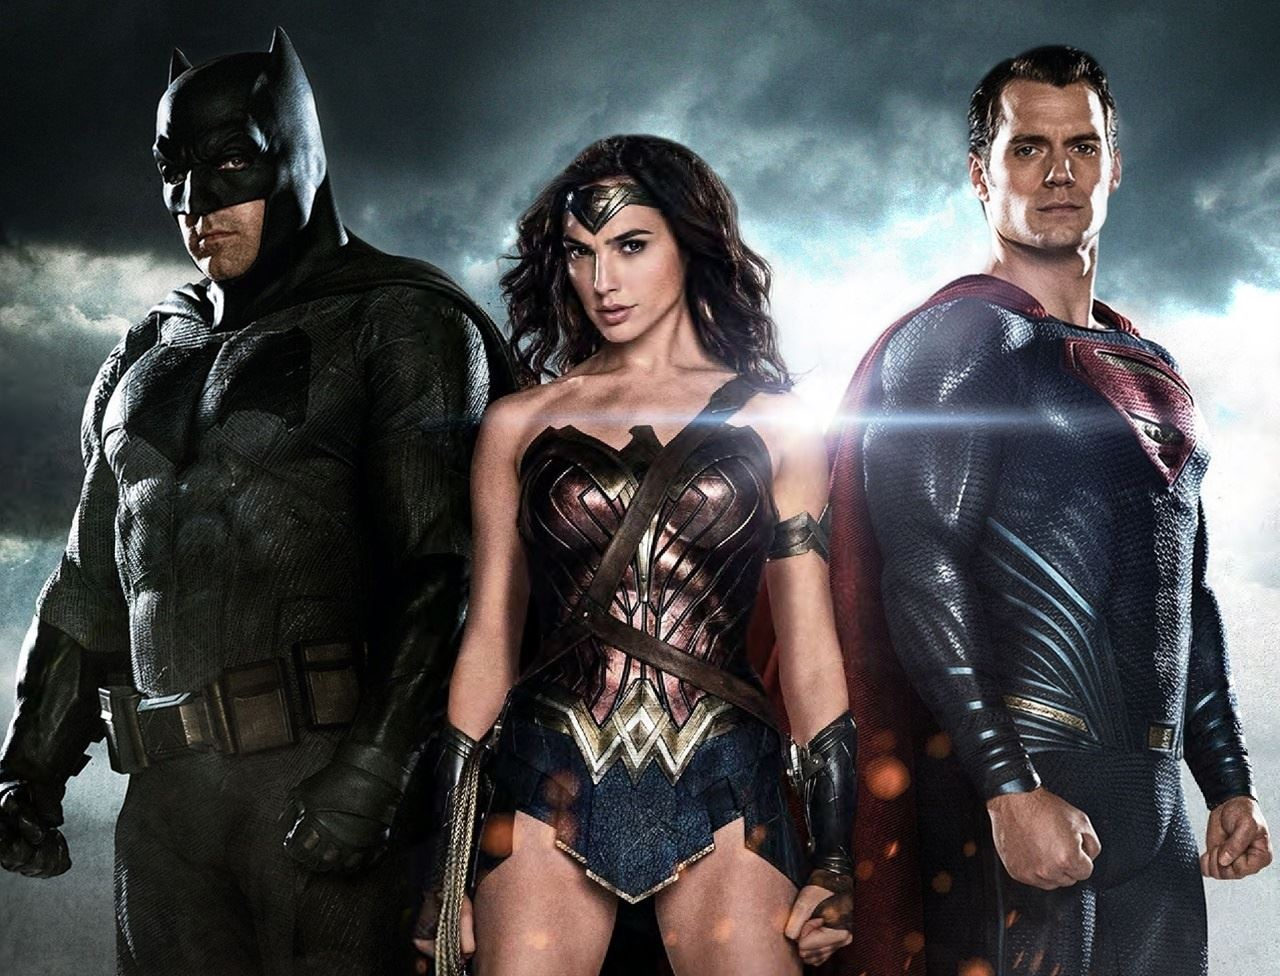 Imagen de Batman v Superman con Wonder Woman